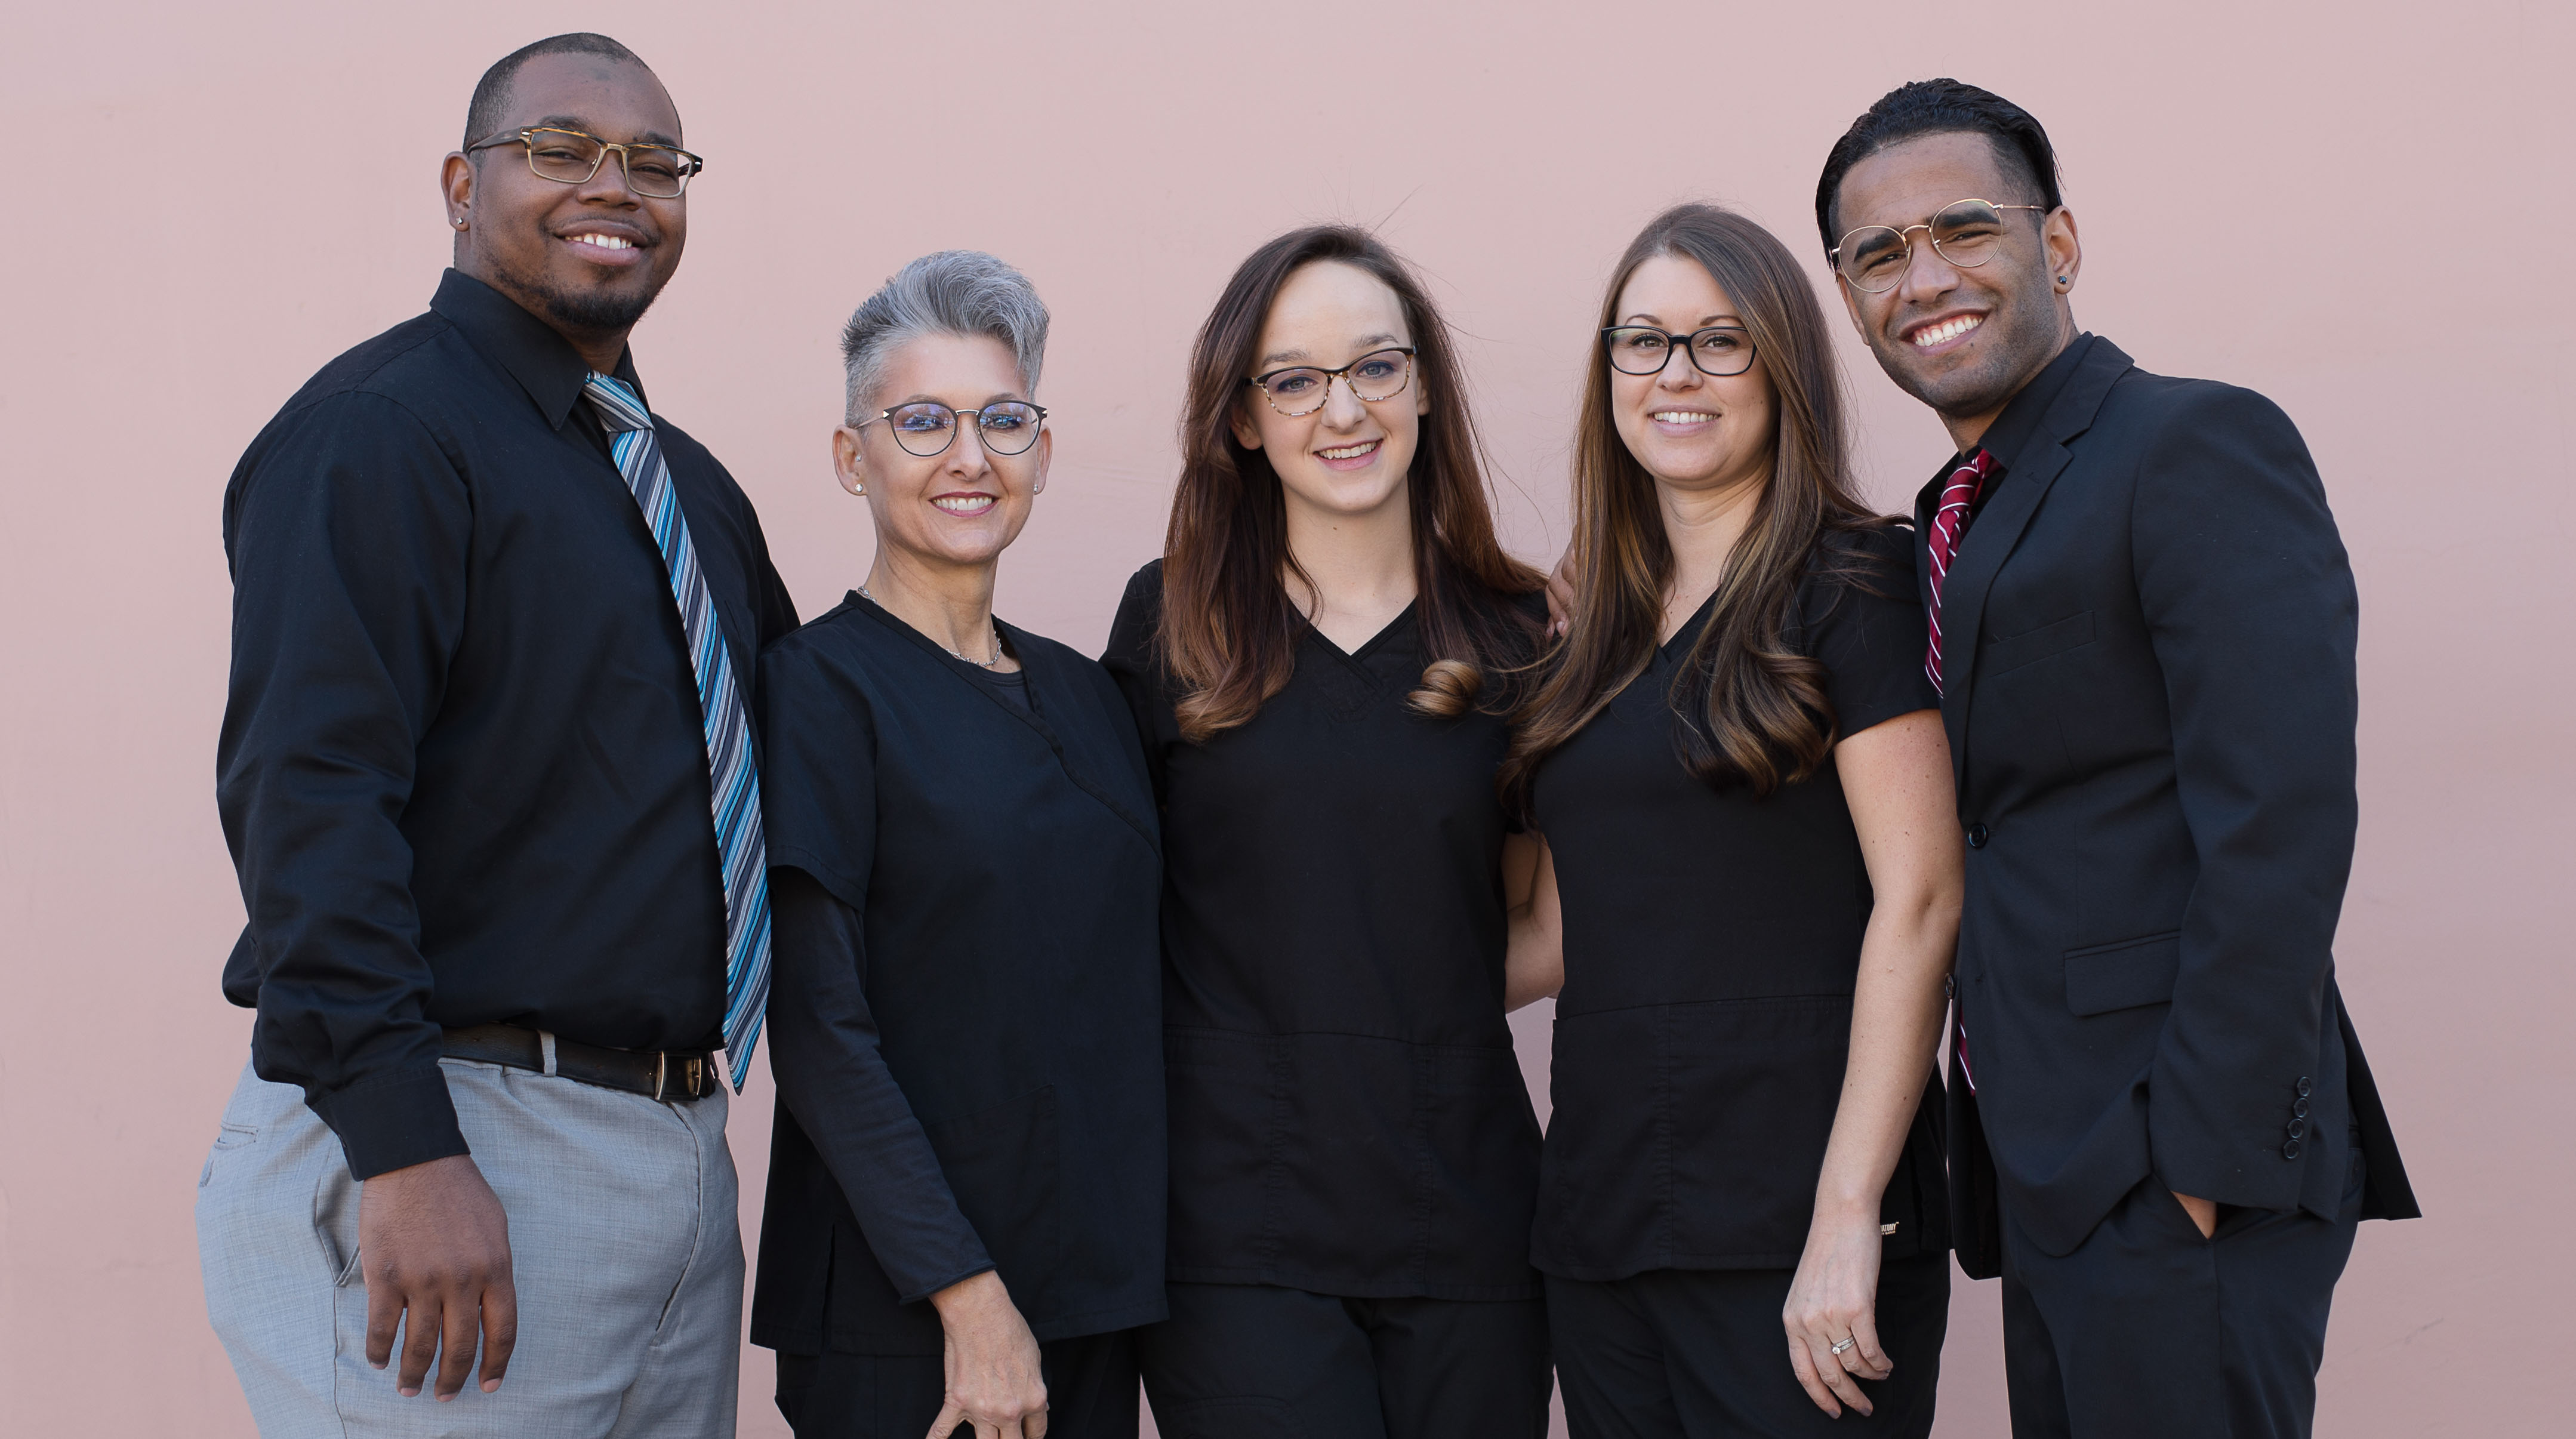 meet the staff at Mallinger Eye Care